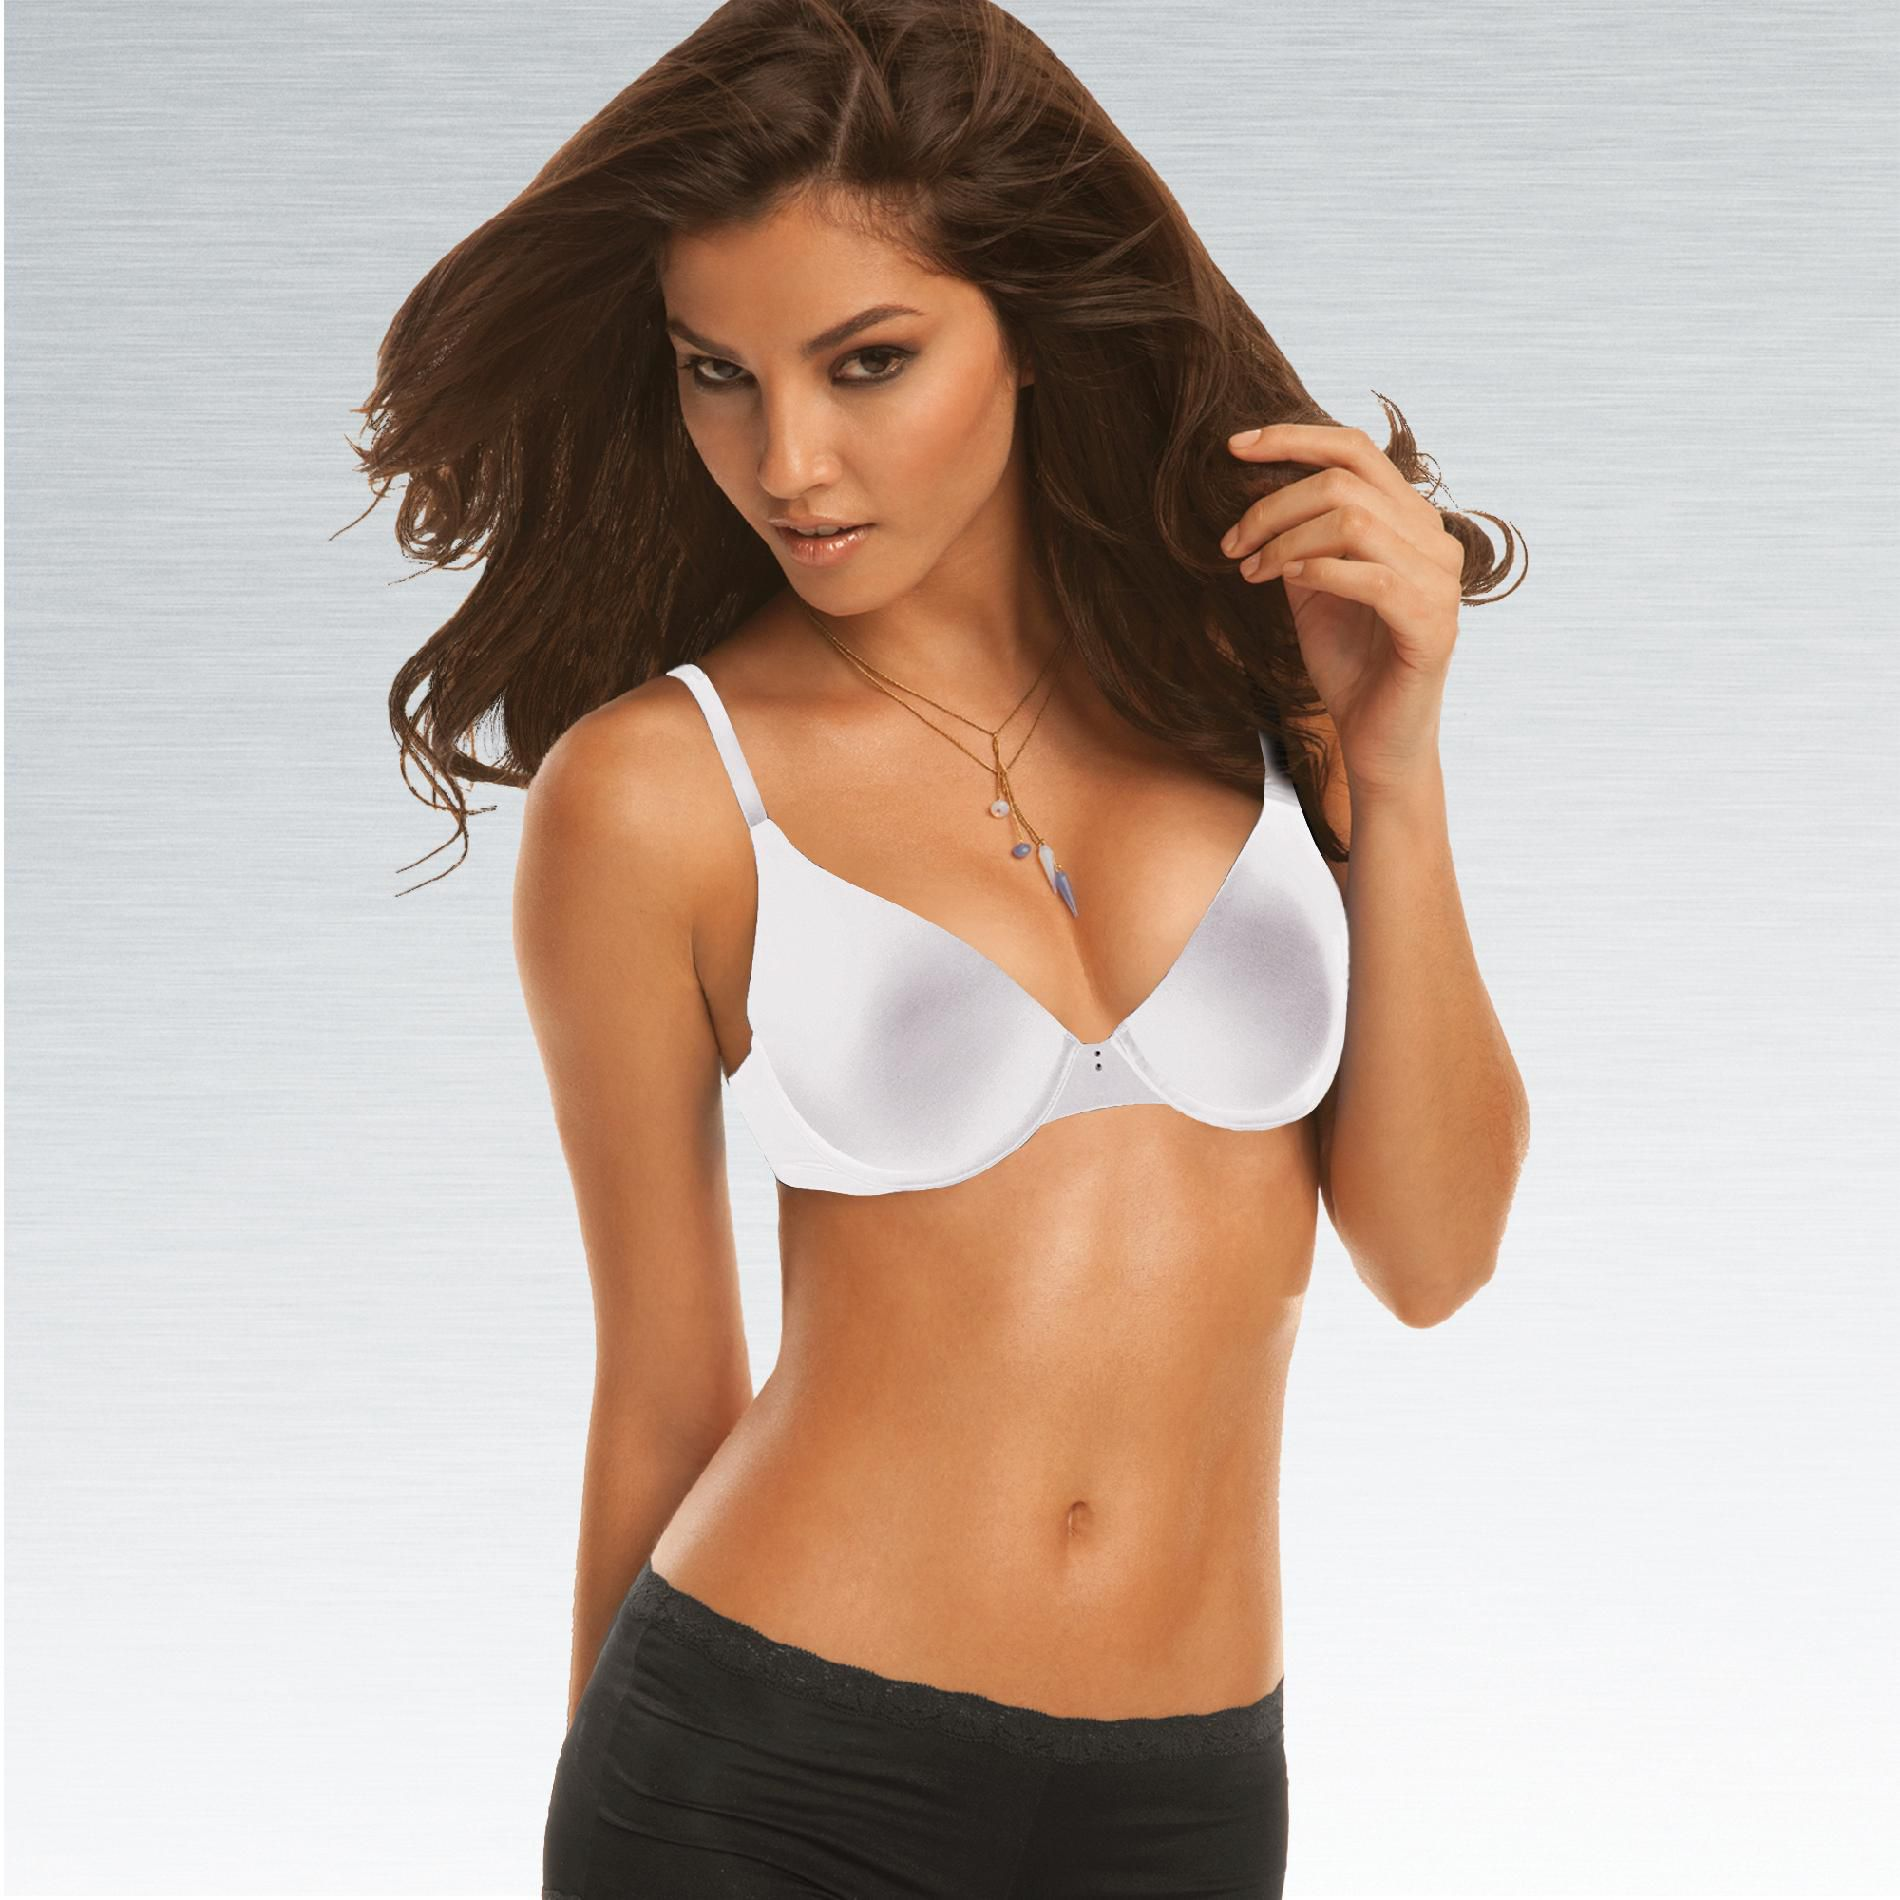 Inspirations Women's Bra Demi 06572 at Kmart.com